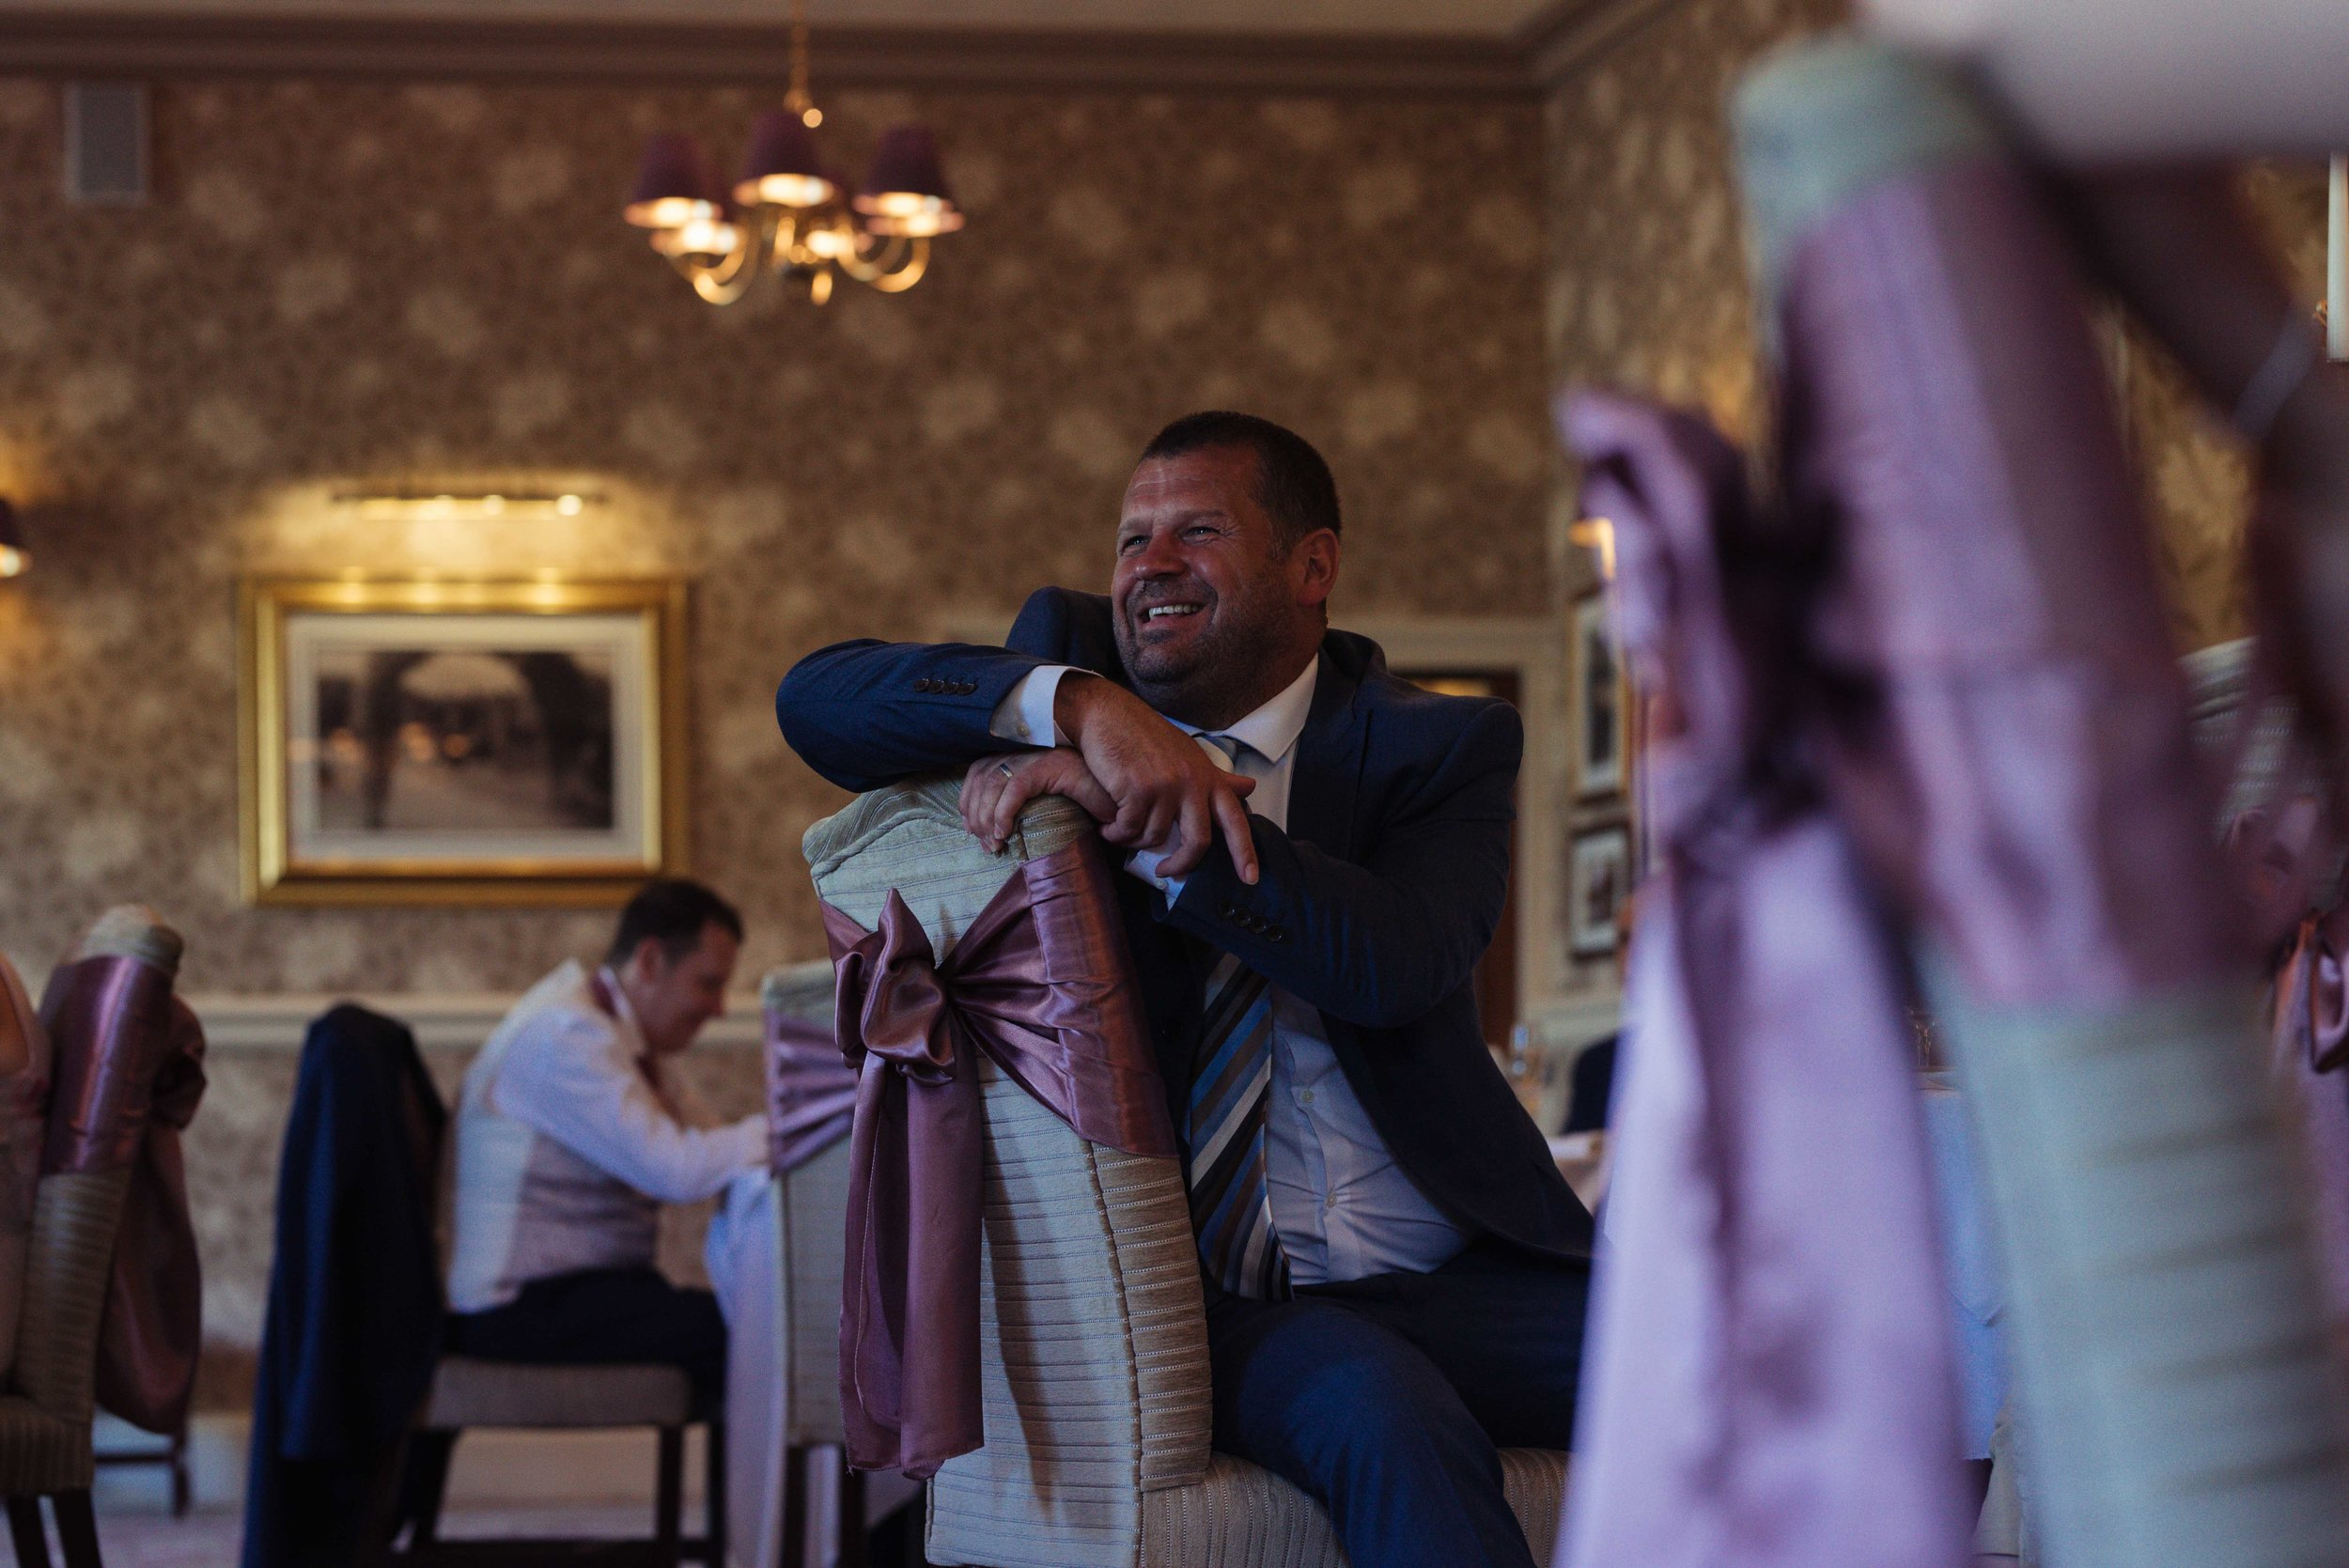 wedding guest leans over the edge of a chair to watch the speeches